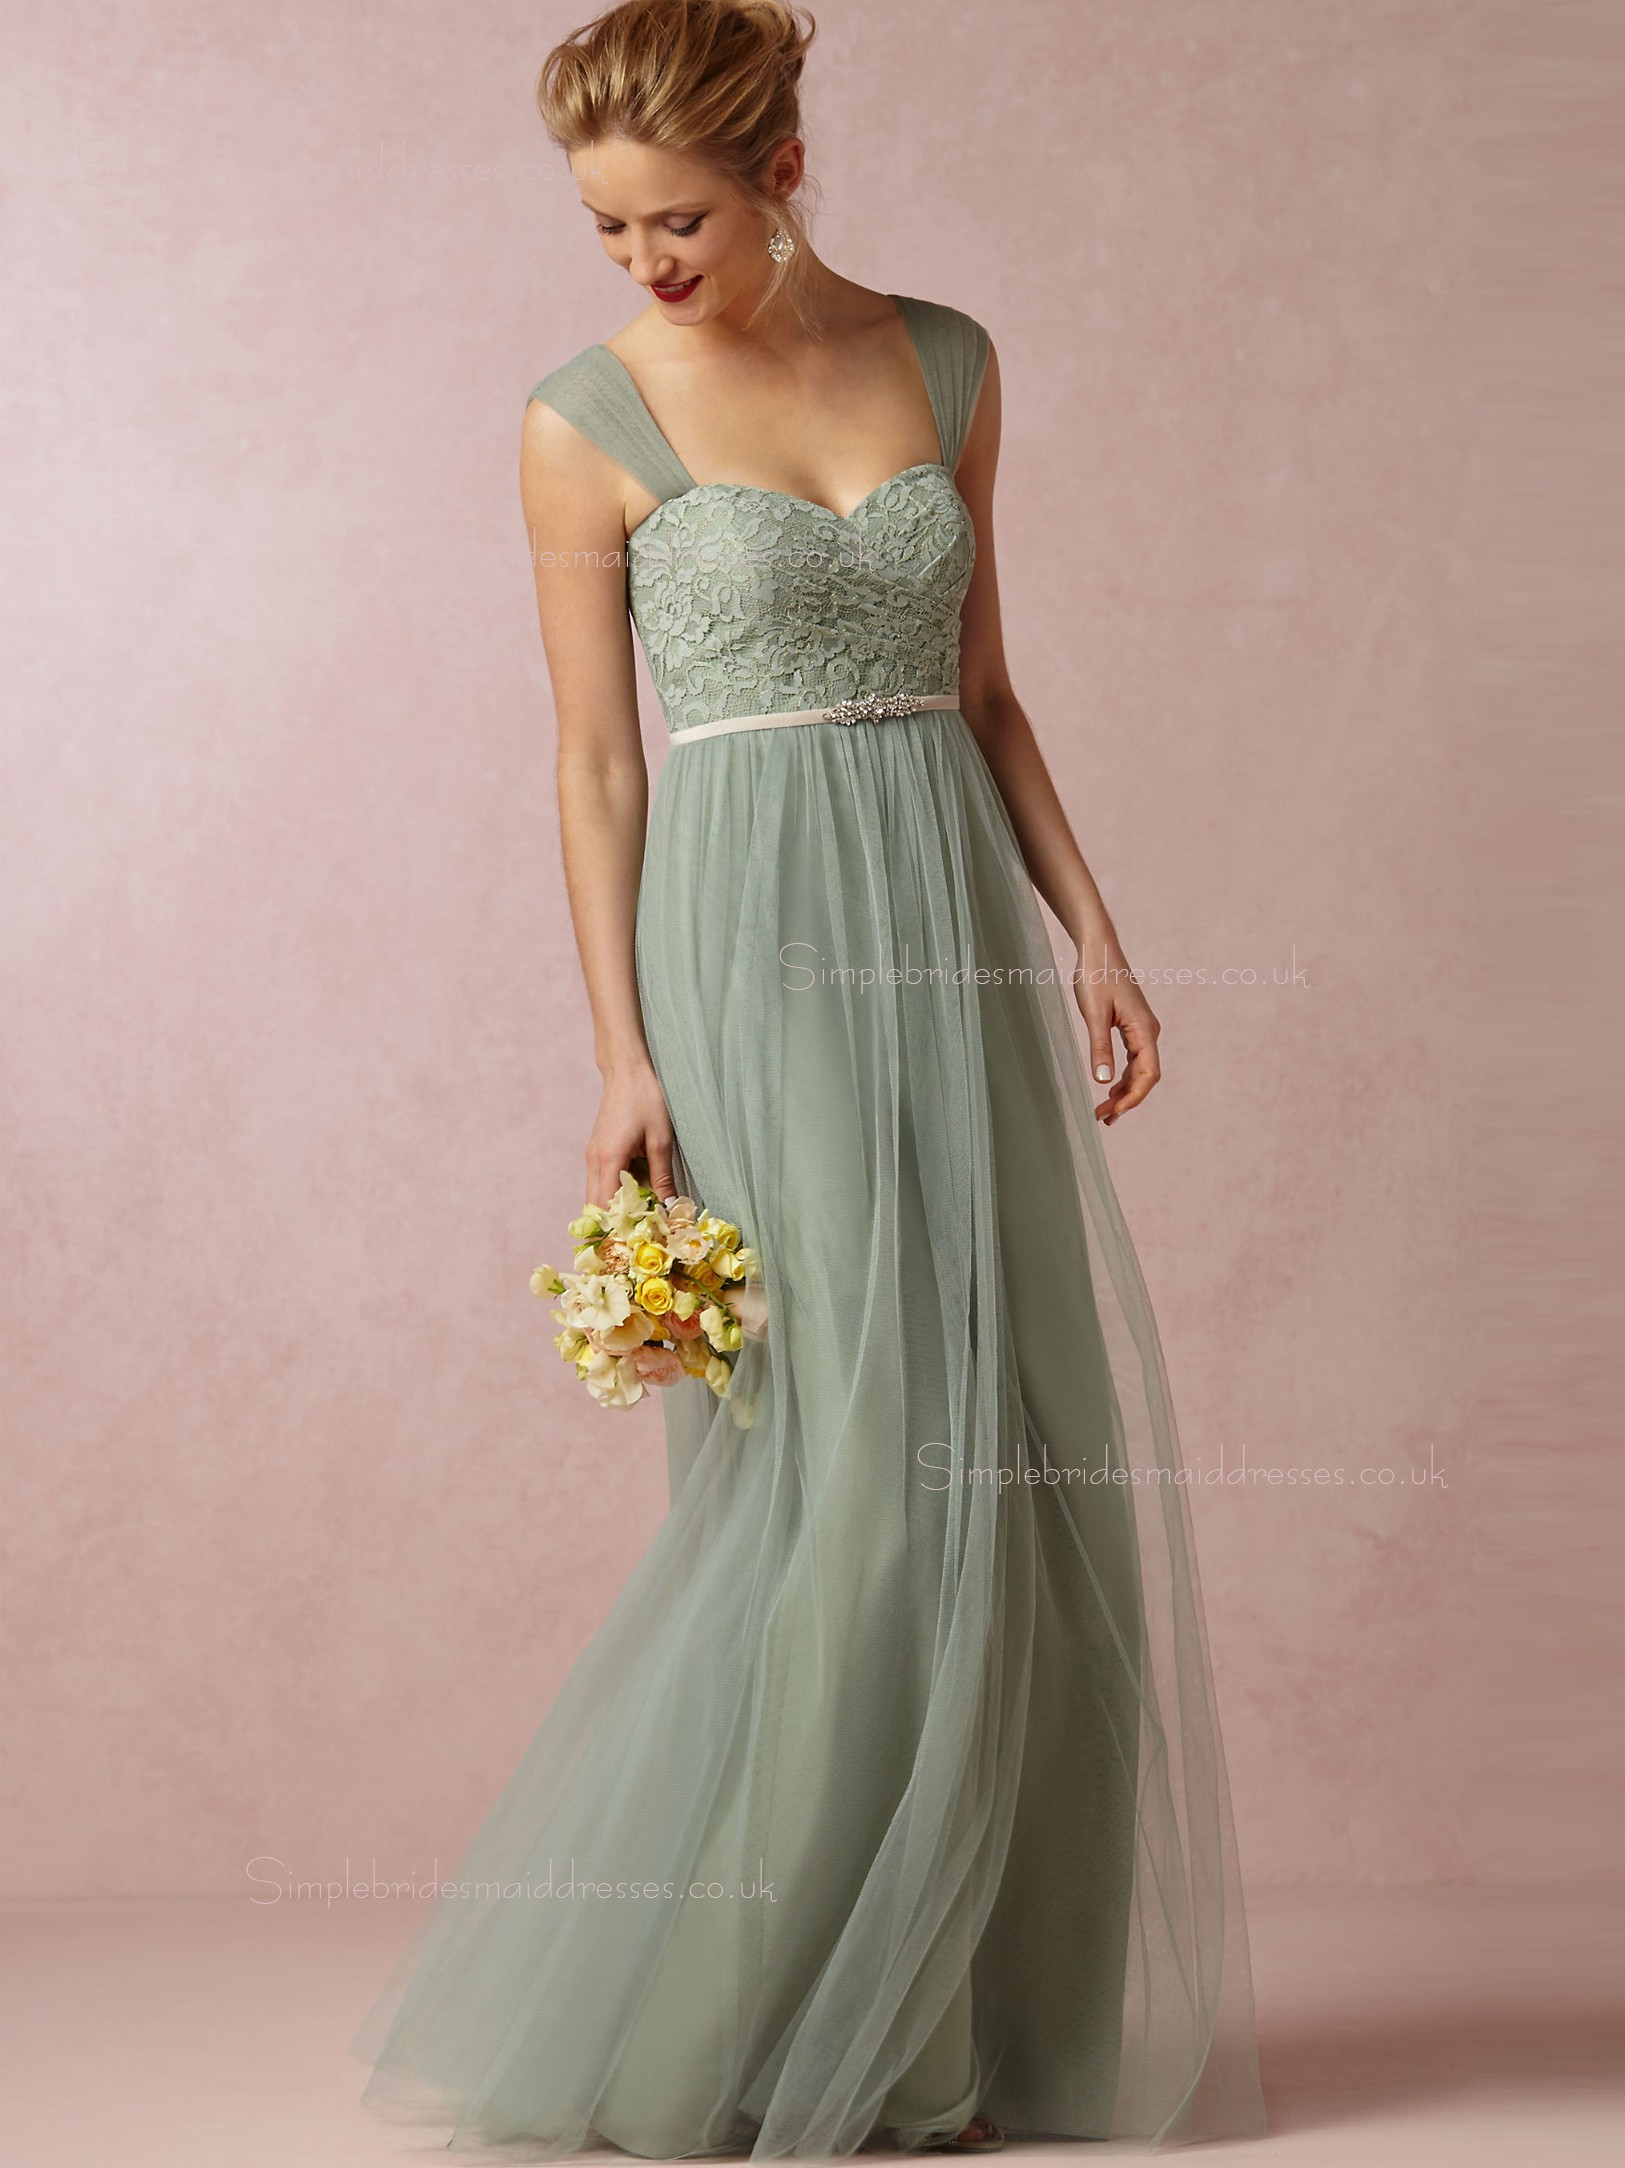 Shop custom green floor length a line bridesmaid dresses for Wedding dresses made in uk